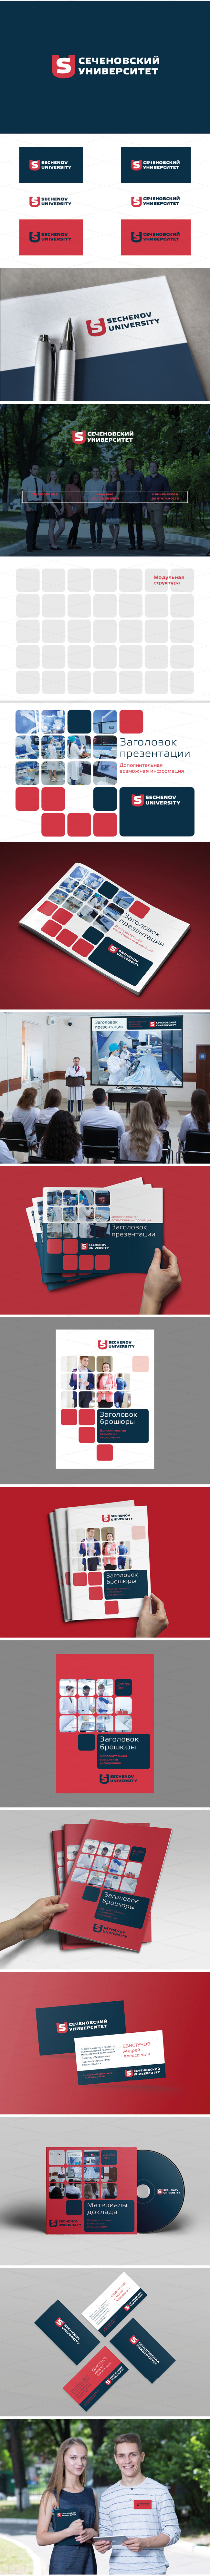 Identity-Sechenov-University-am